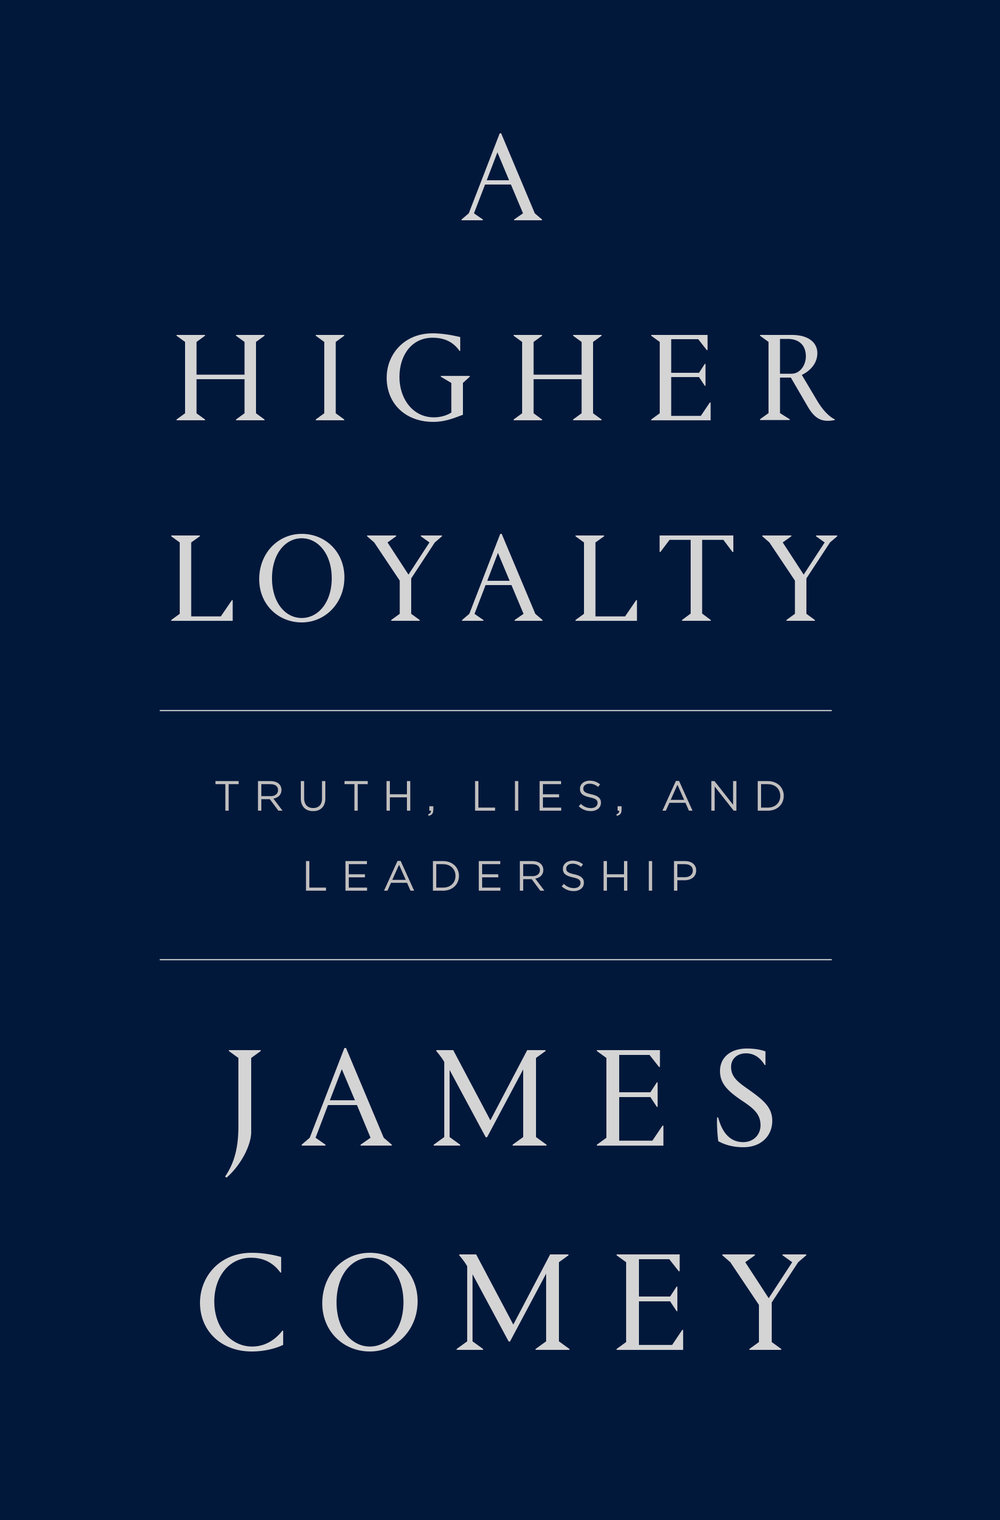 James Comey_A Higher Loyalty (1).JPG